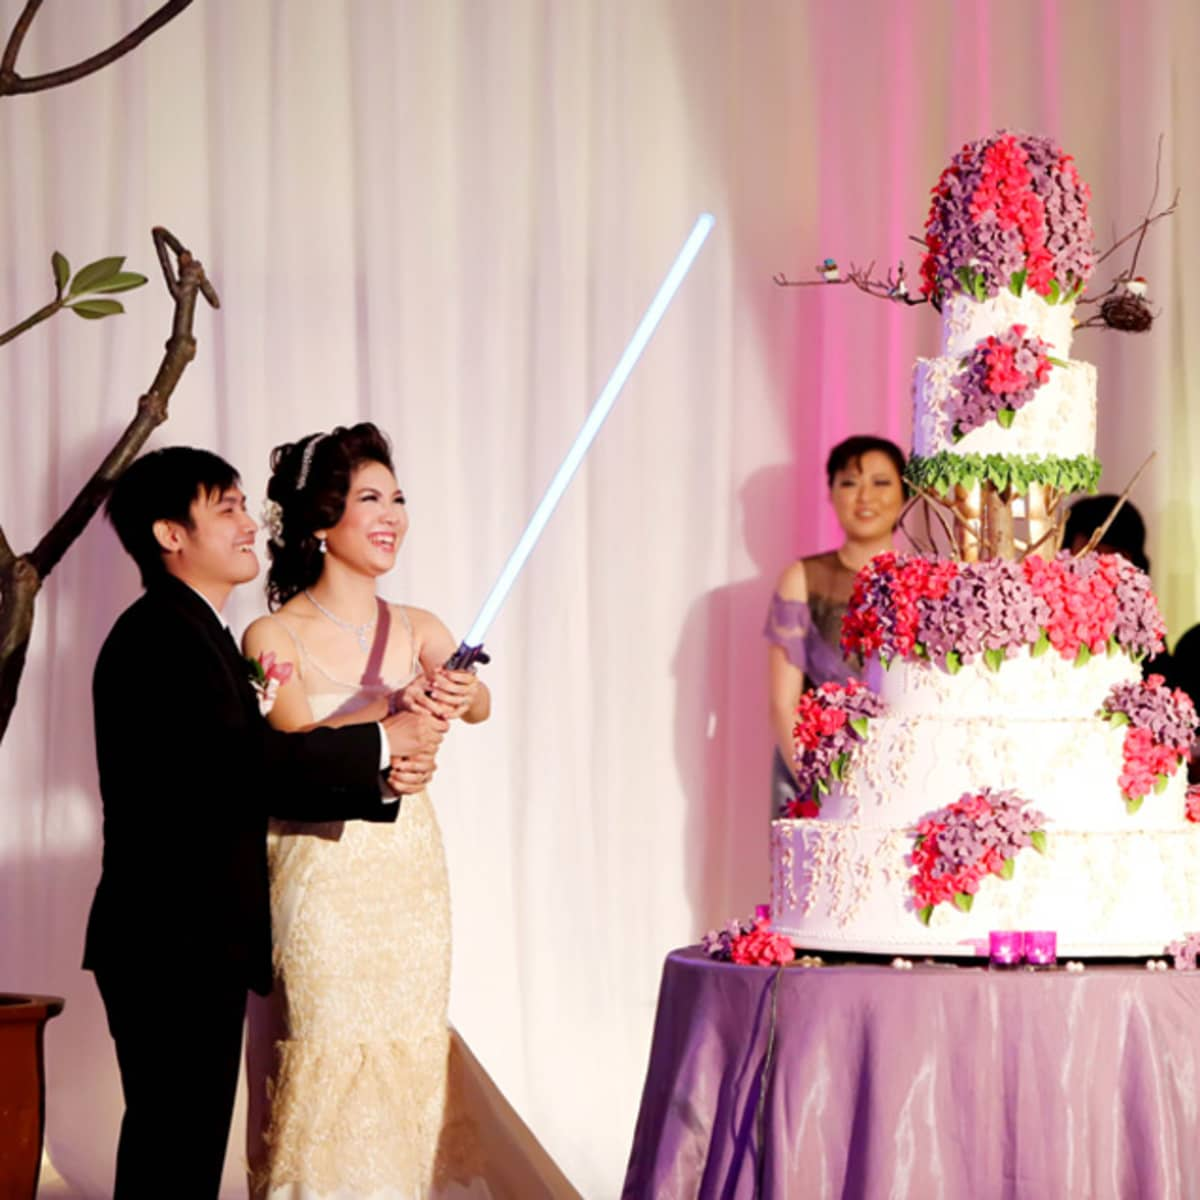 The couple use a Jedi lightsabre to cut their wedding cake.